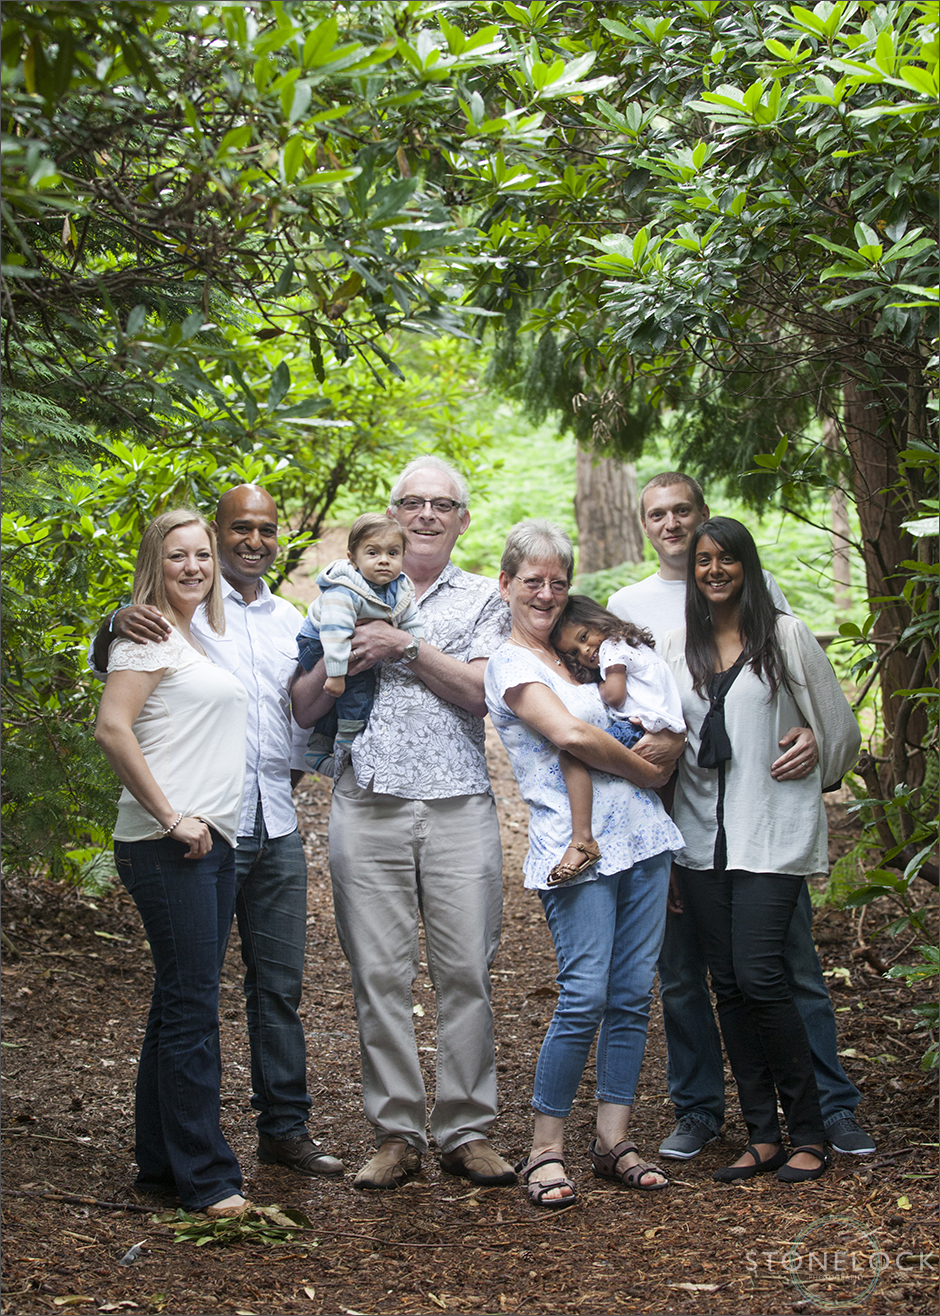 A family photo shoot in Coombe Wood, Croydon with grandparents, adult children and grandchildren. The family stand in the wood, amongst the trees